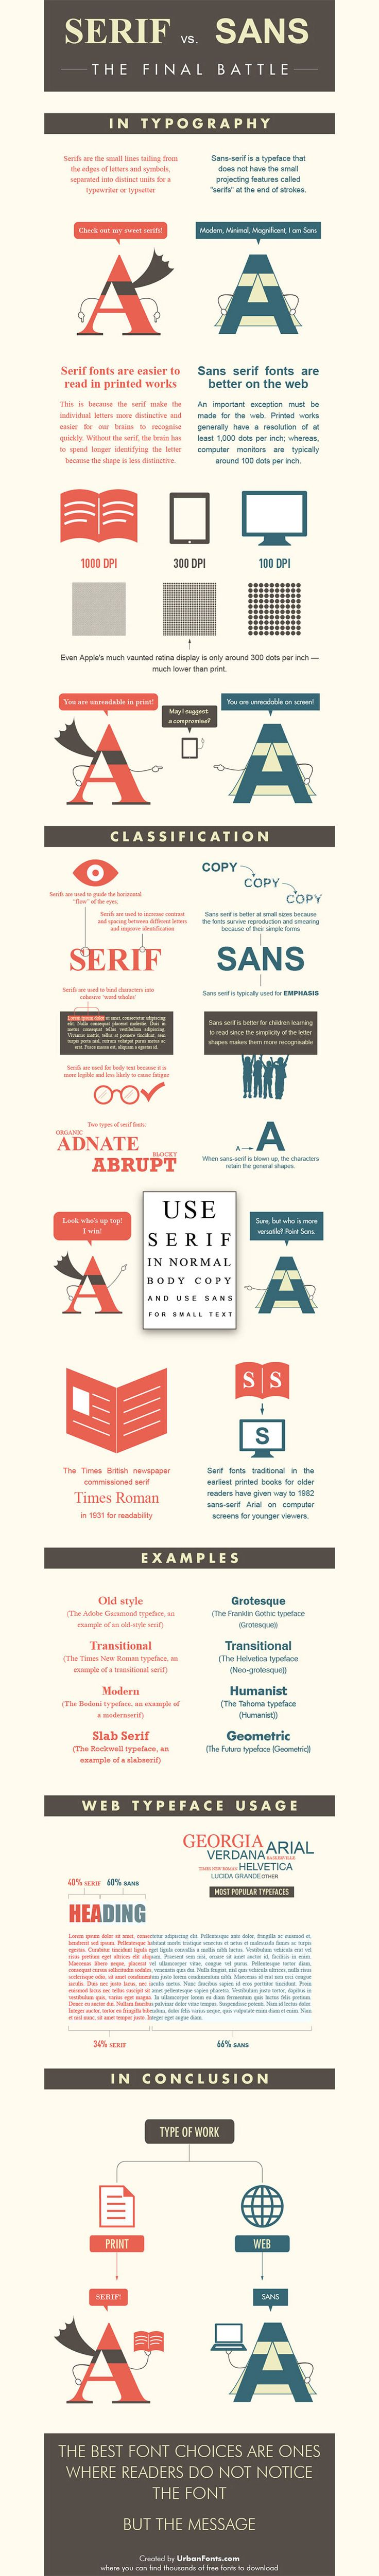 Fonts - when to use Serif or San Serif. #infographic #fonts